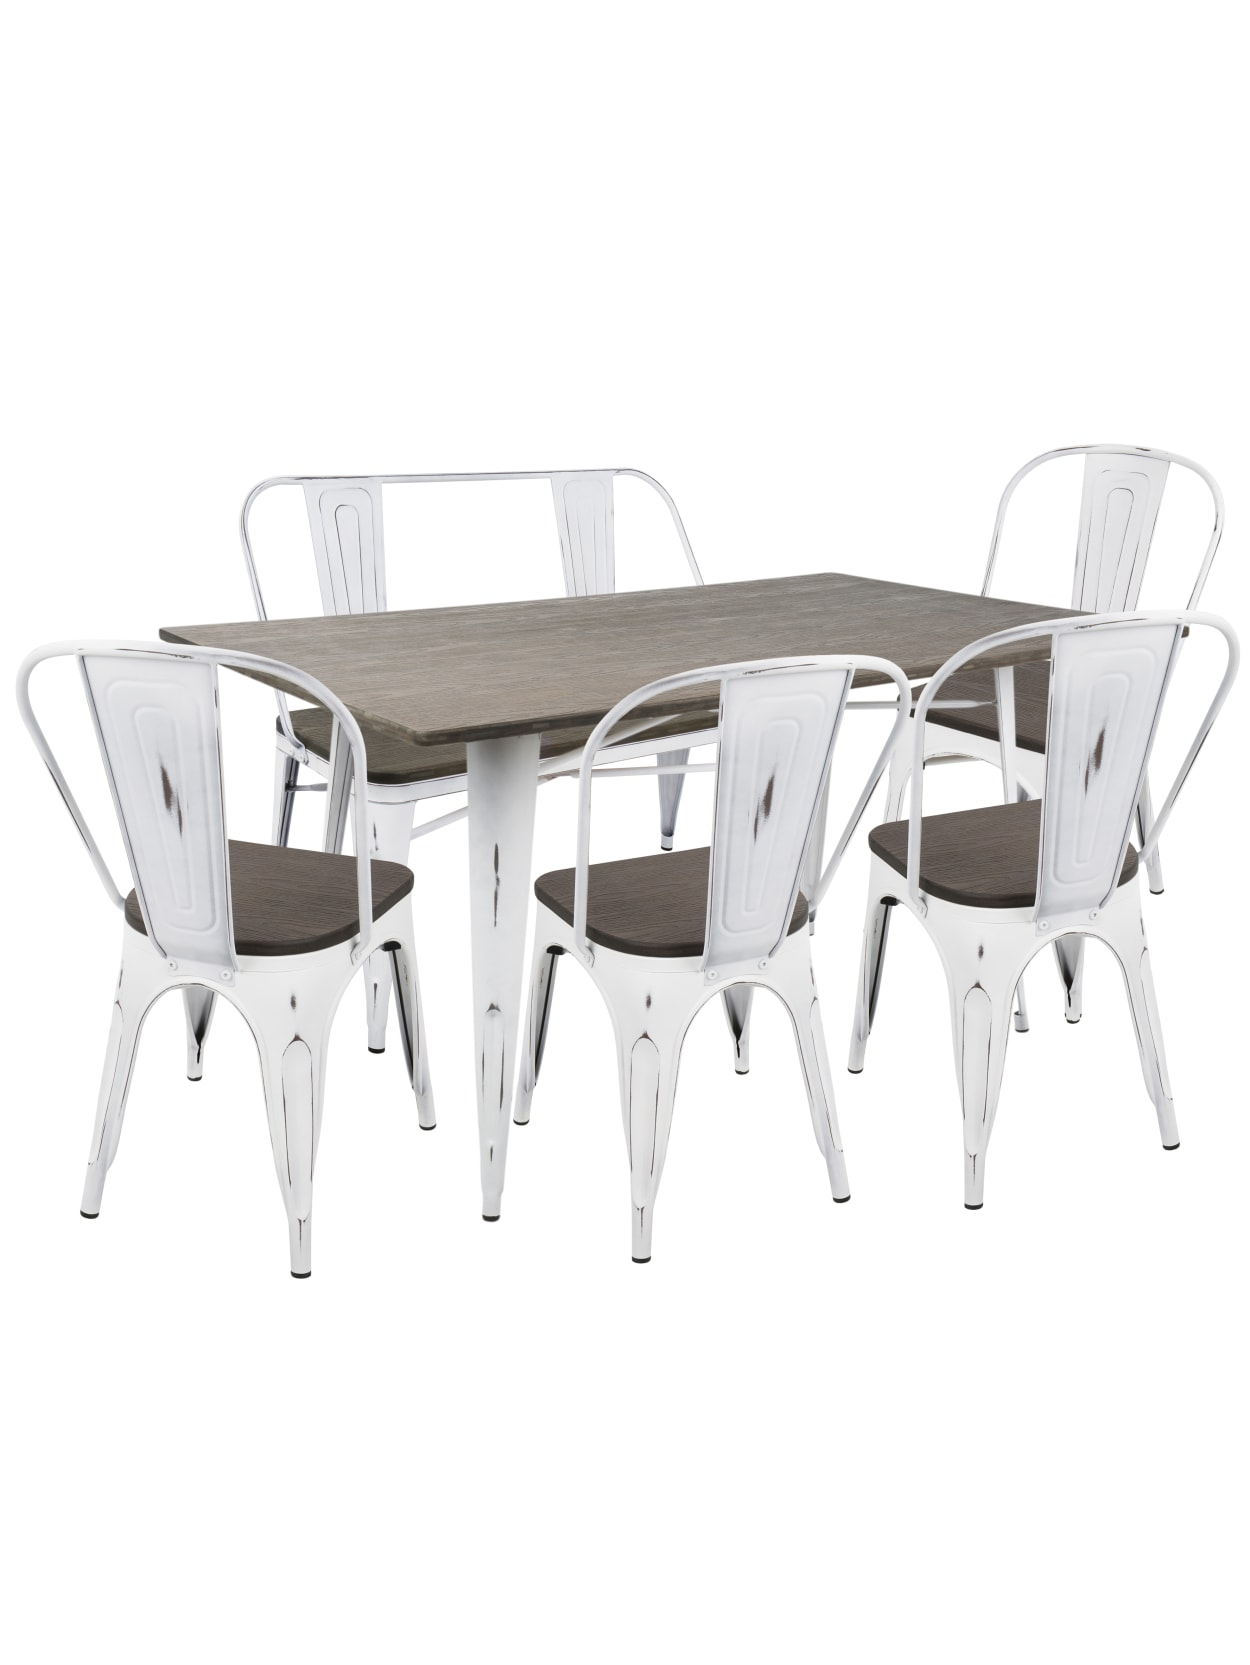 Lumisource Oregon Industrial Farmhouse Dining Table With 1 Bench And 4 Dining Chairs Vintage Whiteespresso Office Depot